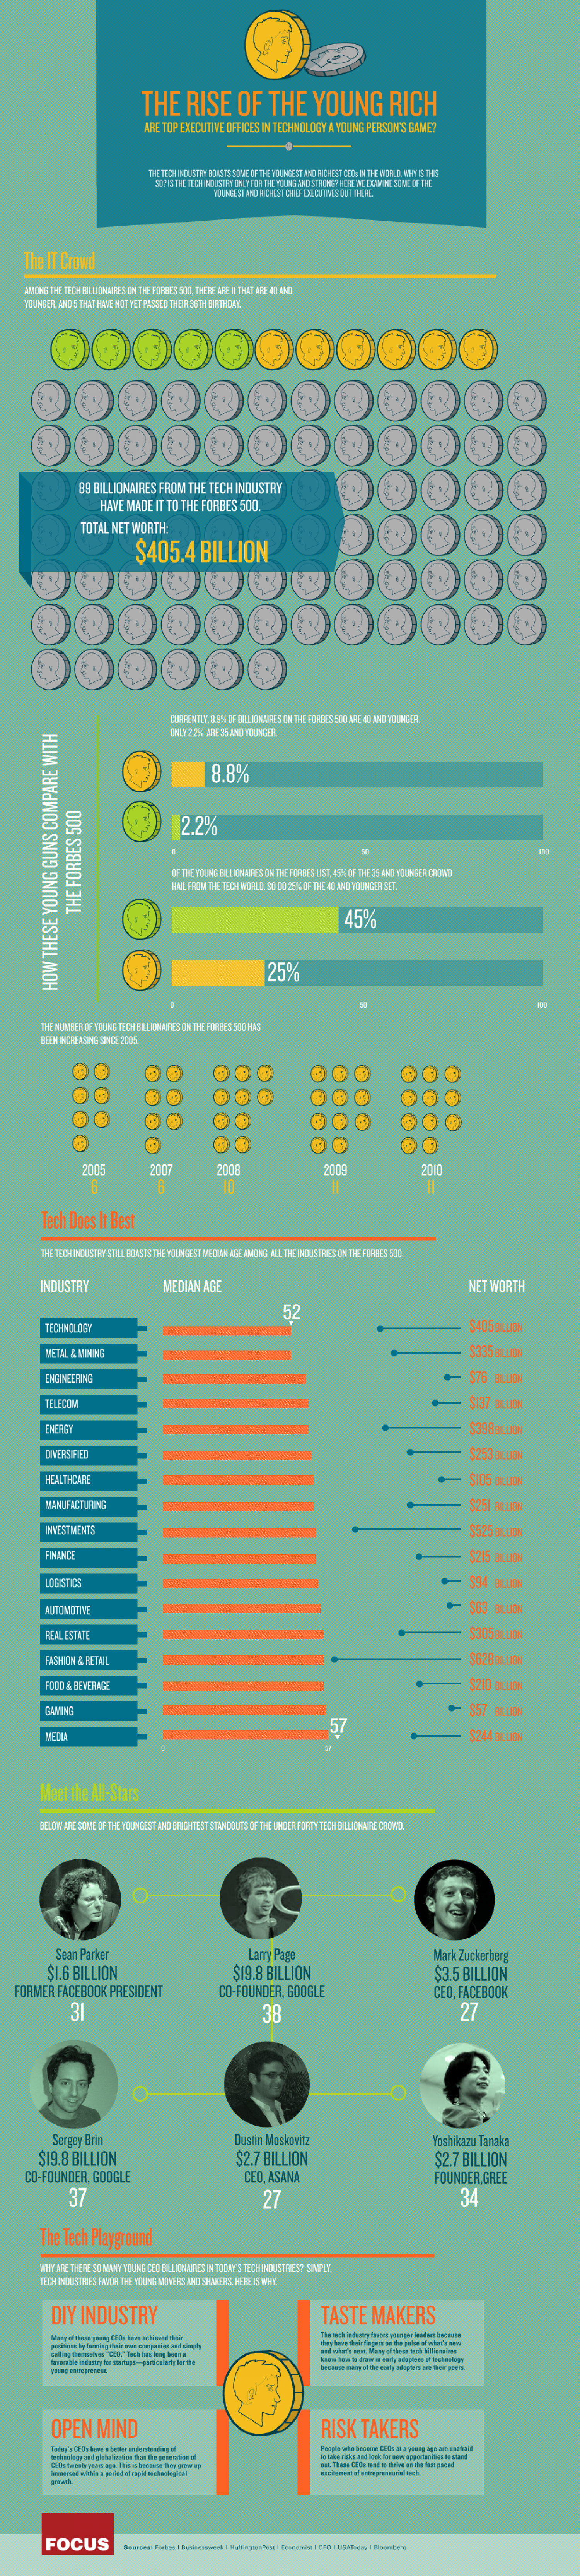 The Rise of the Young Rich Infographic